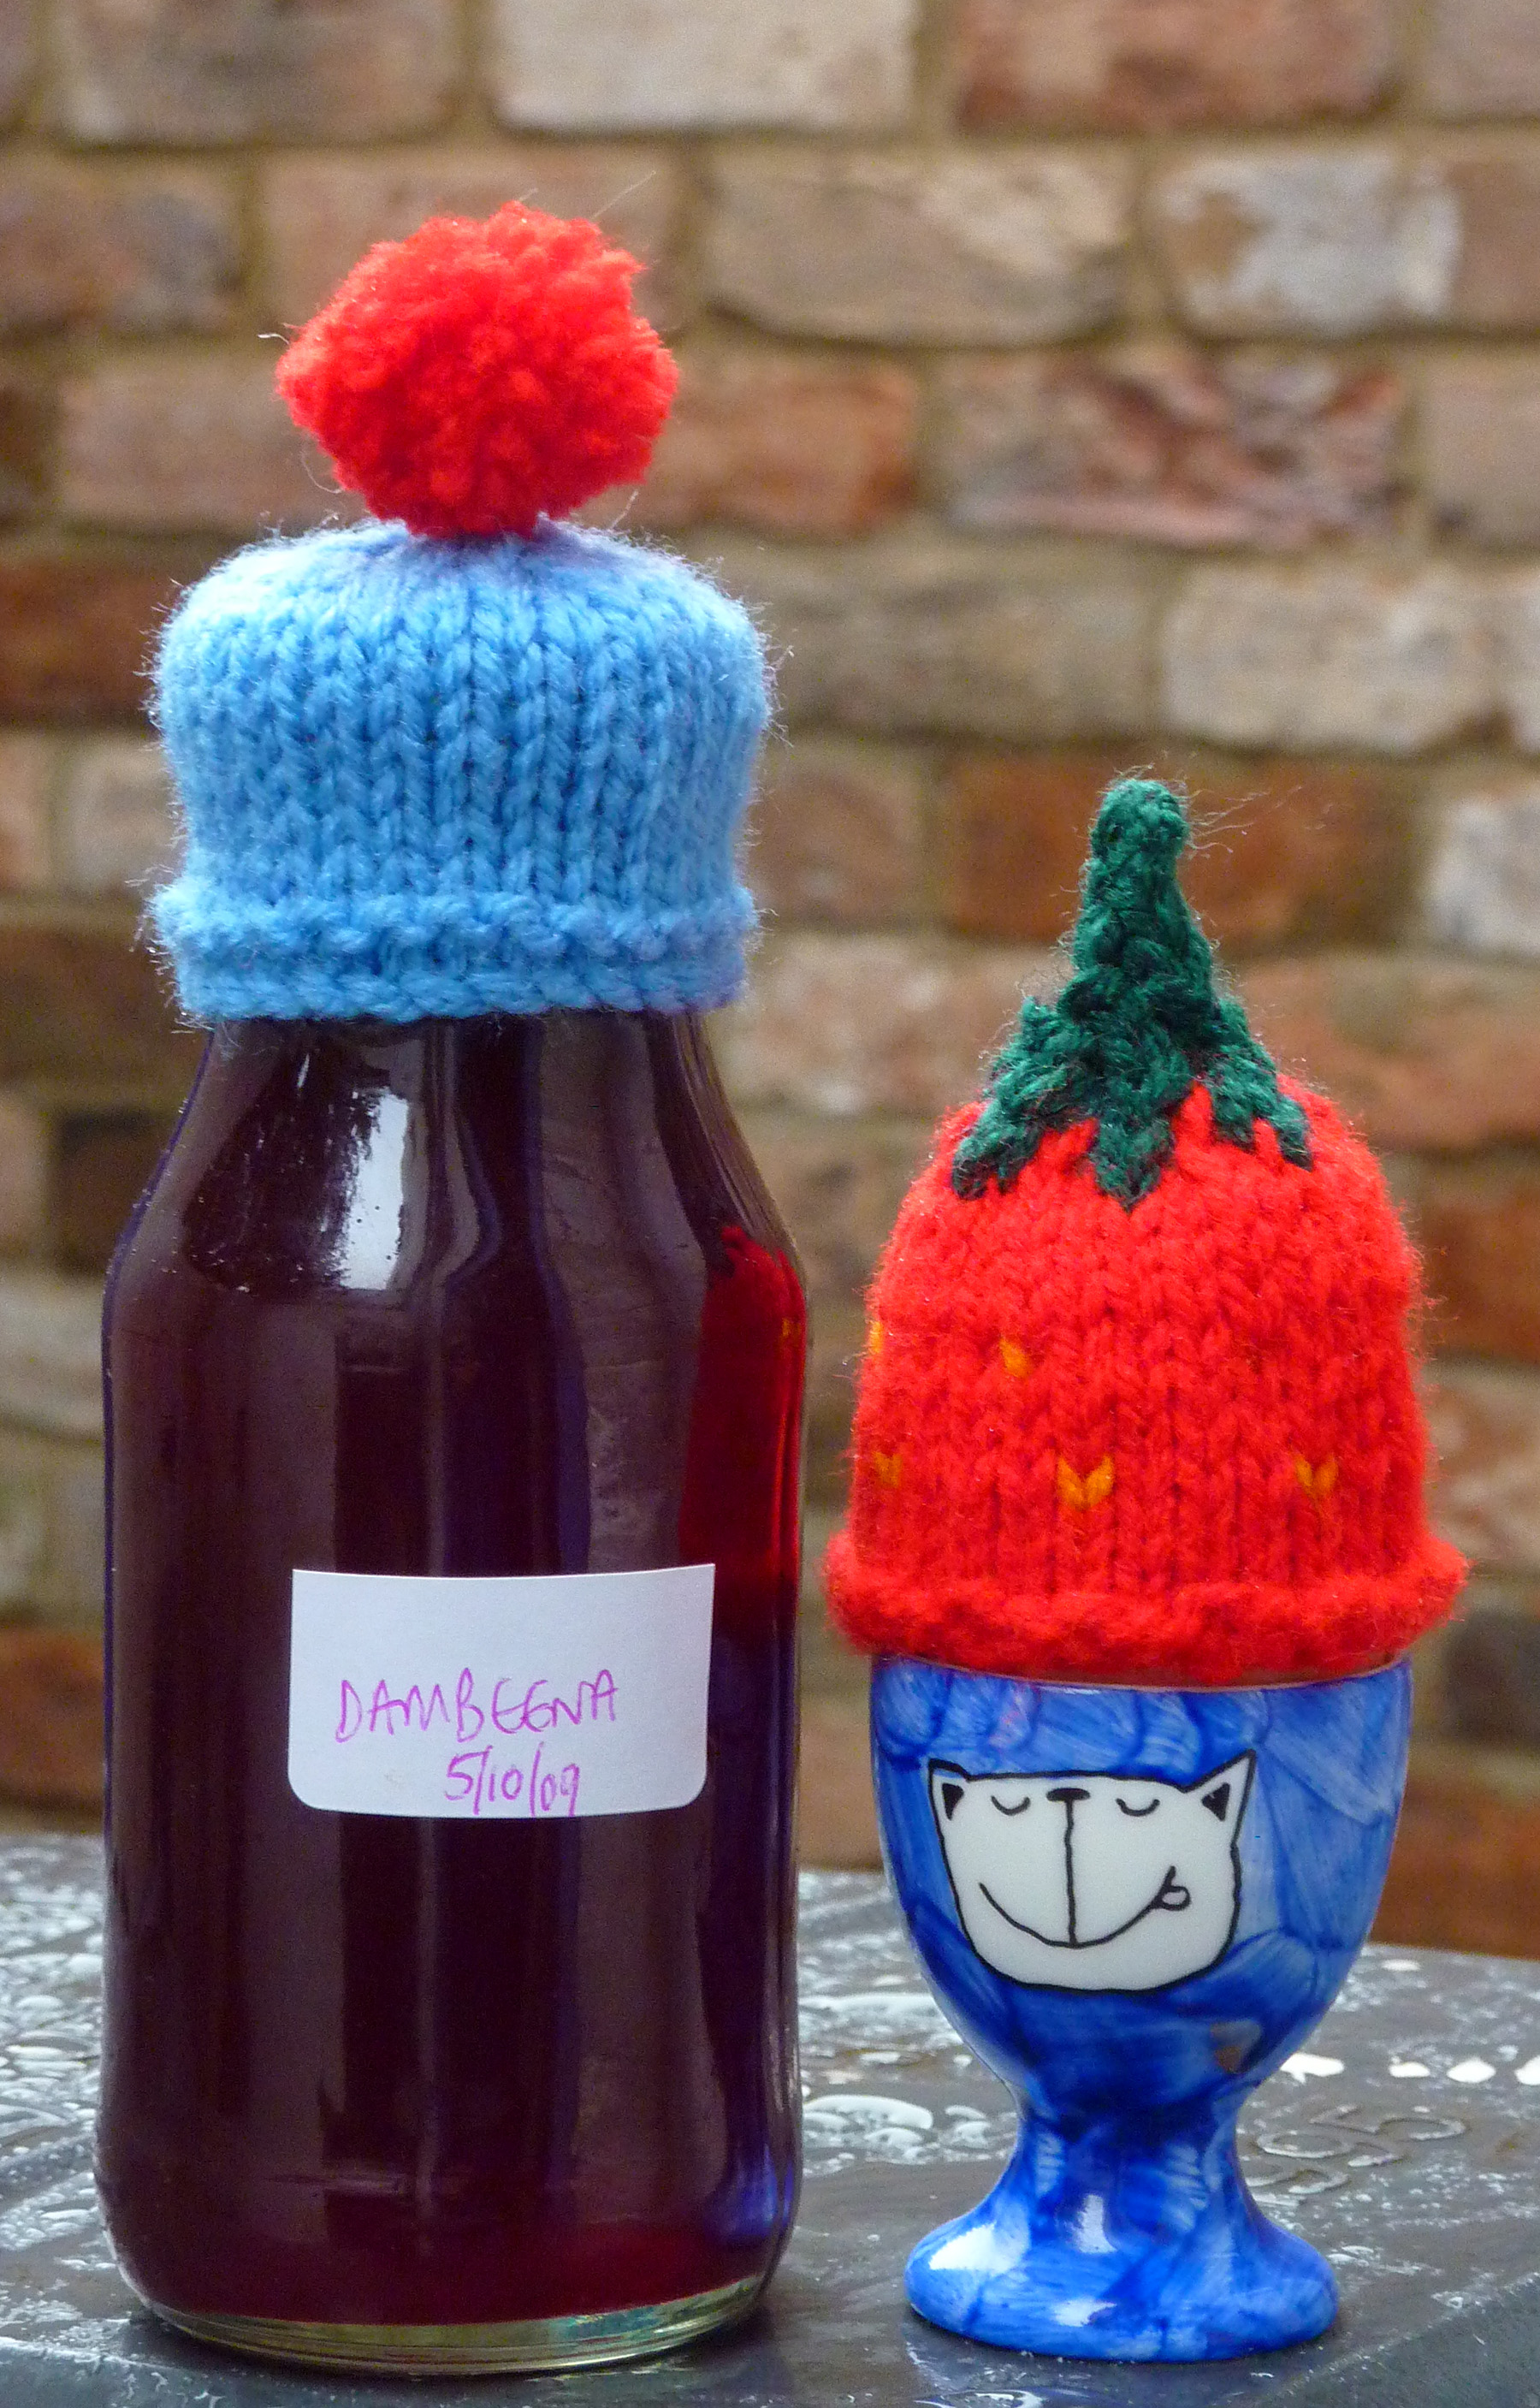 Big Knit - hats